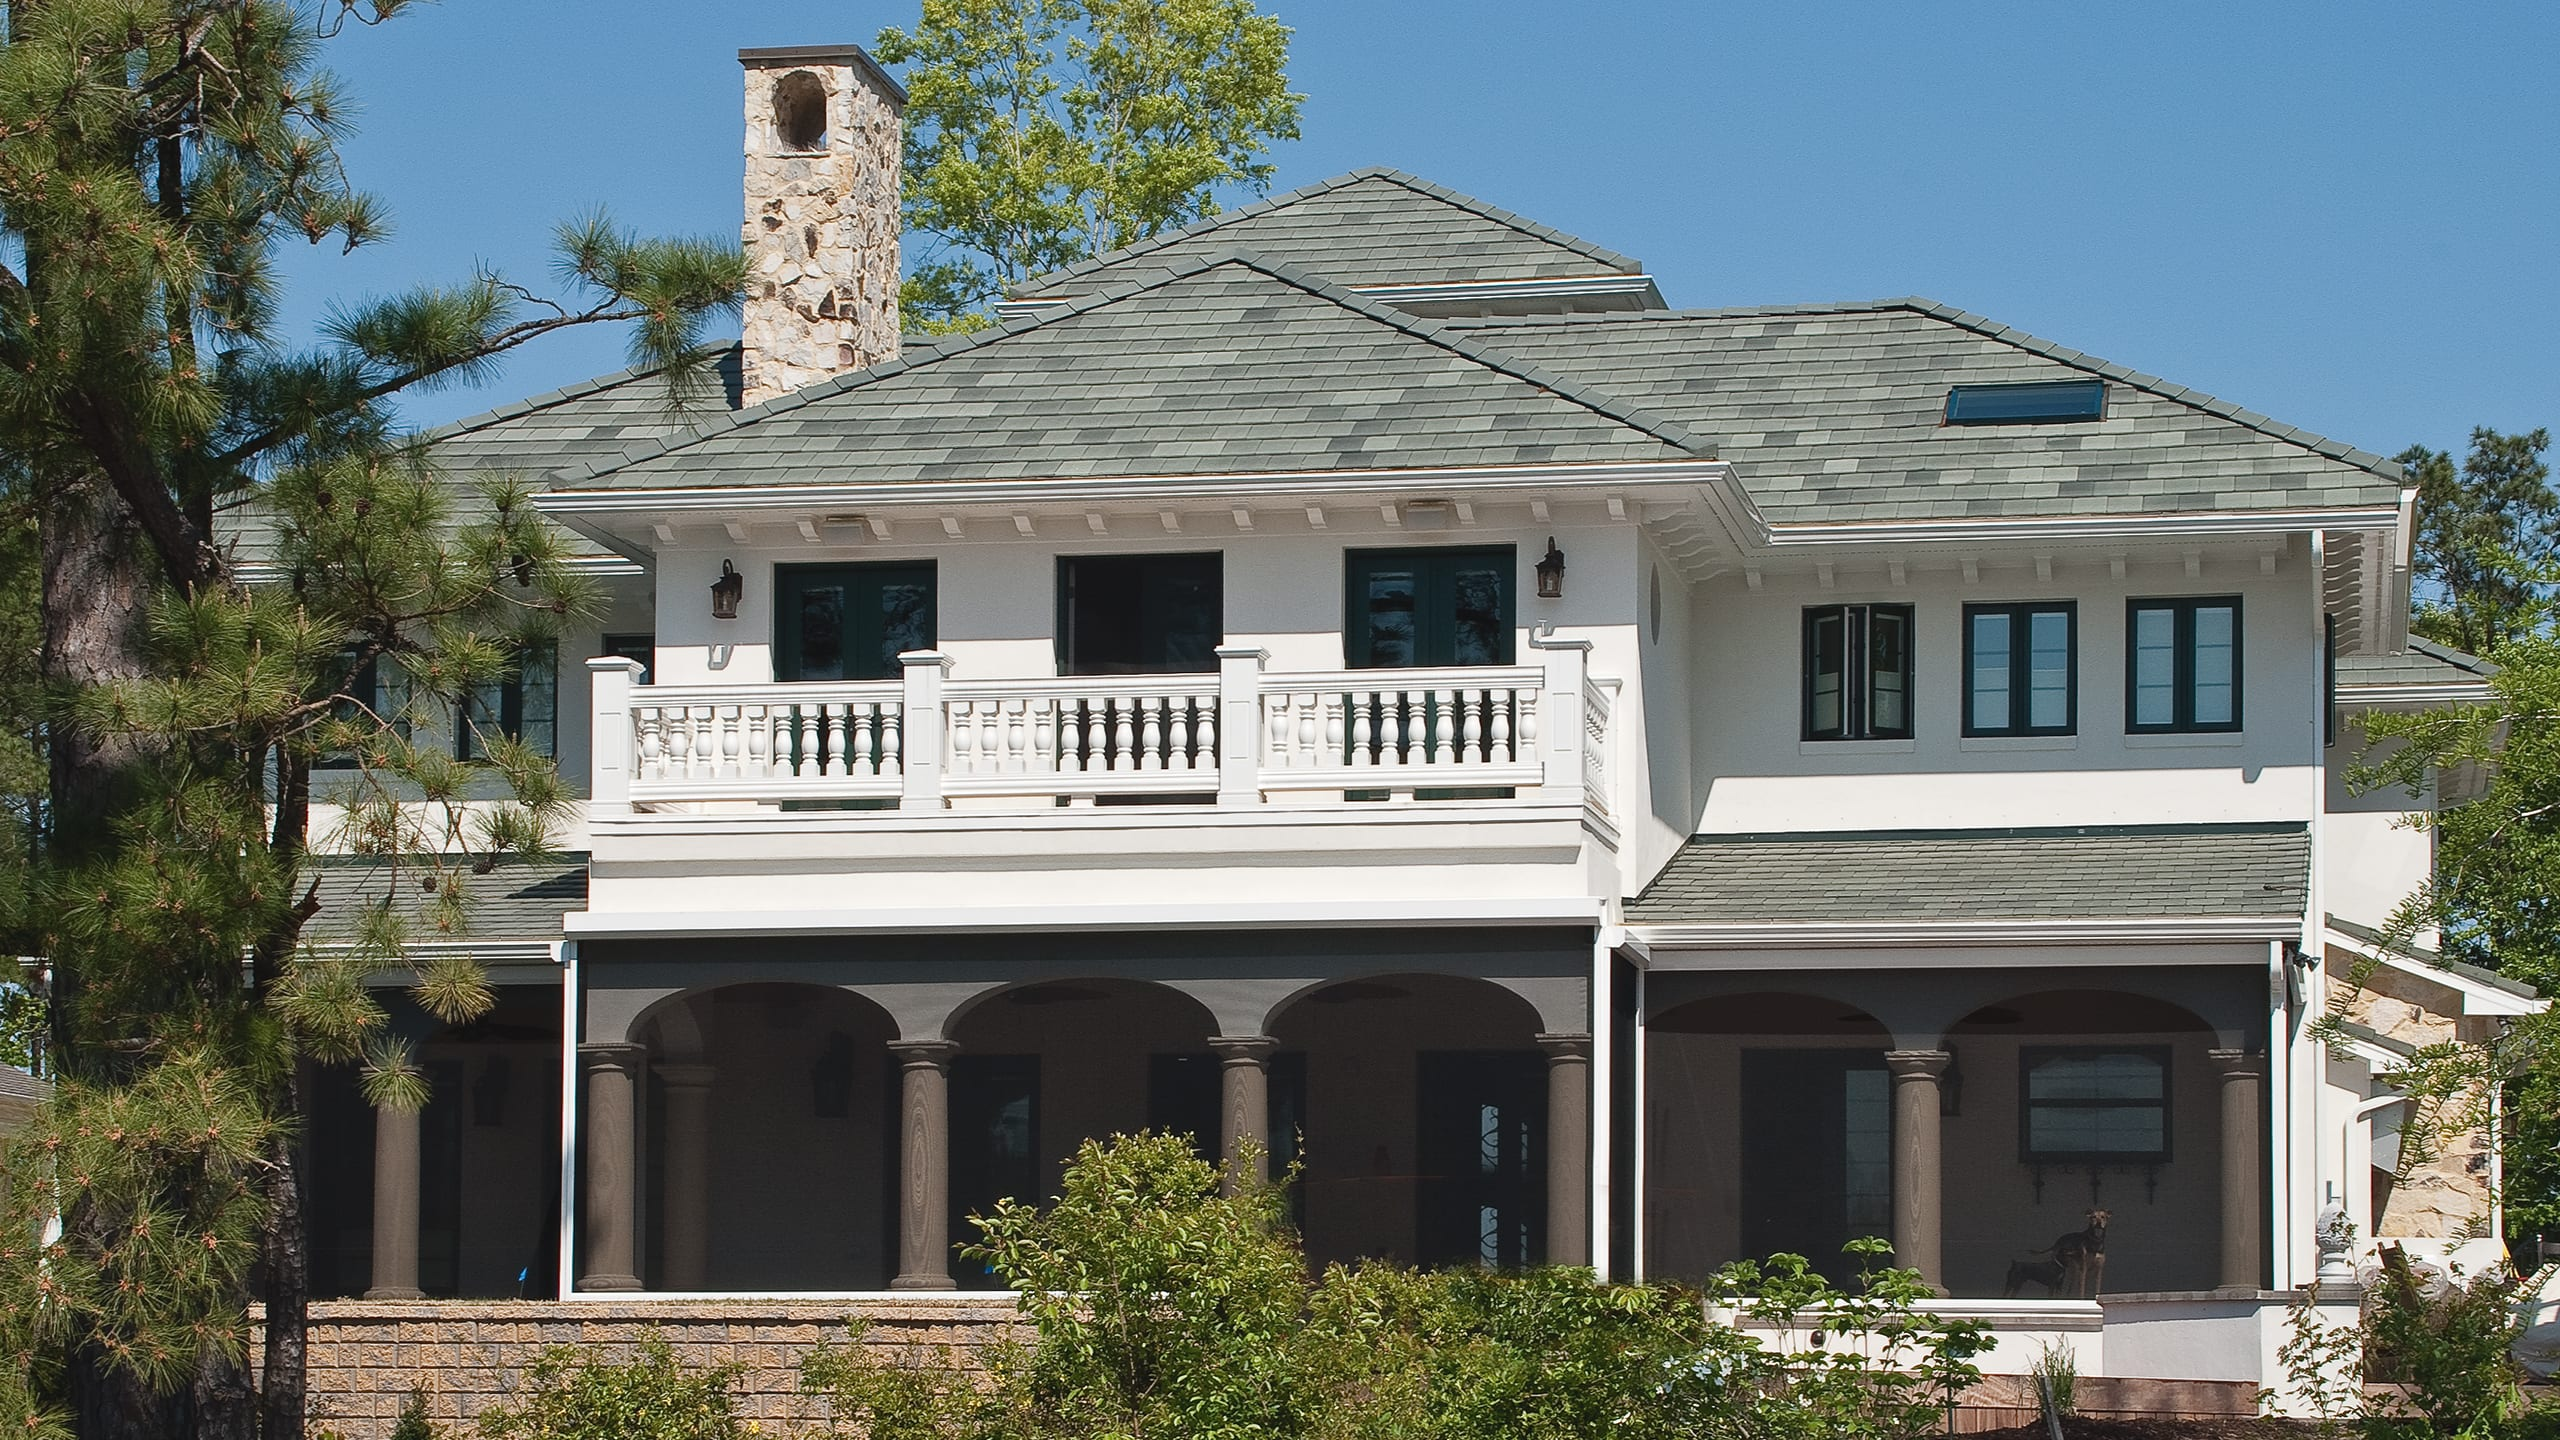 Private Residence - Hertford Ludowici Roof Tile